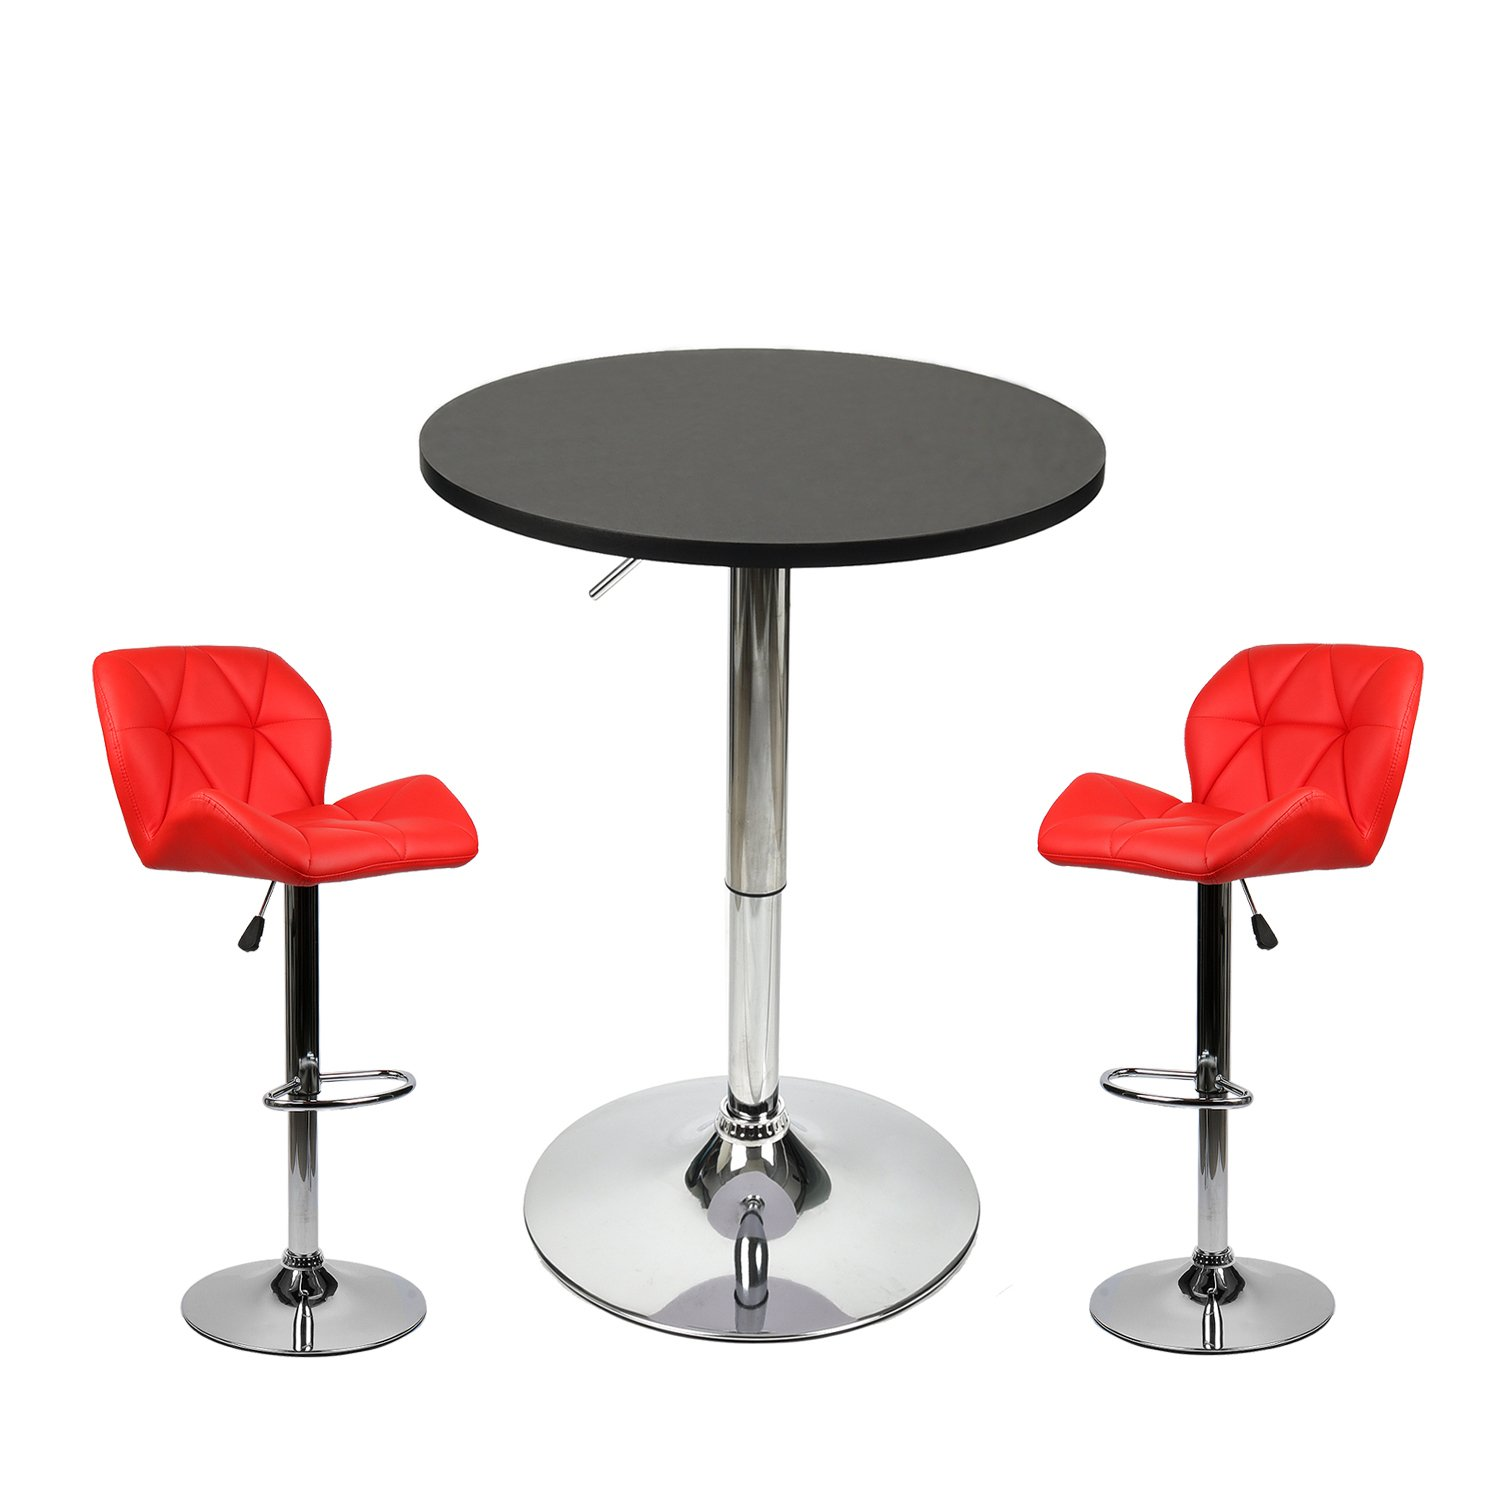 PULUOMIS 35 Inches Height Pub Table Round Black Mdf Top, with 2 Red Contemporary Chrome Air Lift Barstool Leather Padded Adjustable Swivel Stools